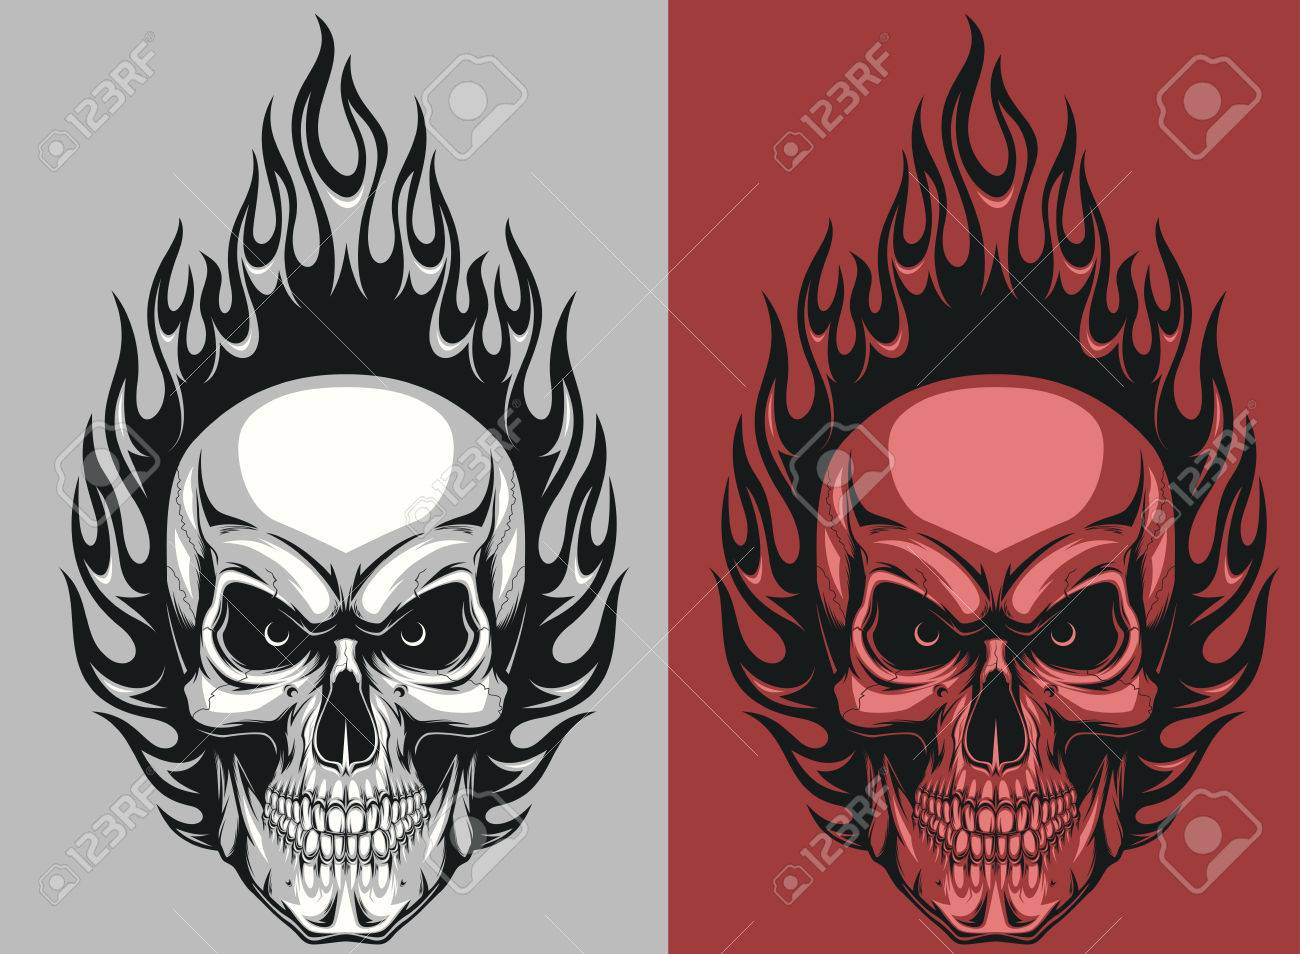 1300x954 Skull Drawing Stock Photos. Royalty Free Business Images